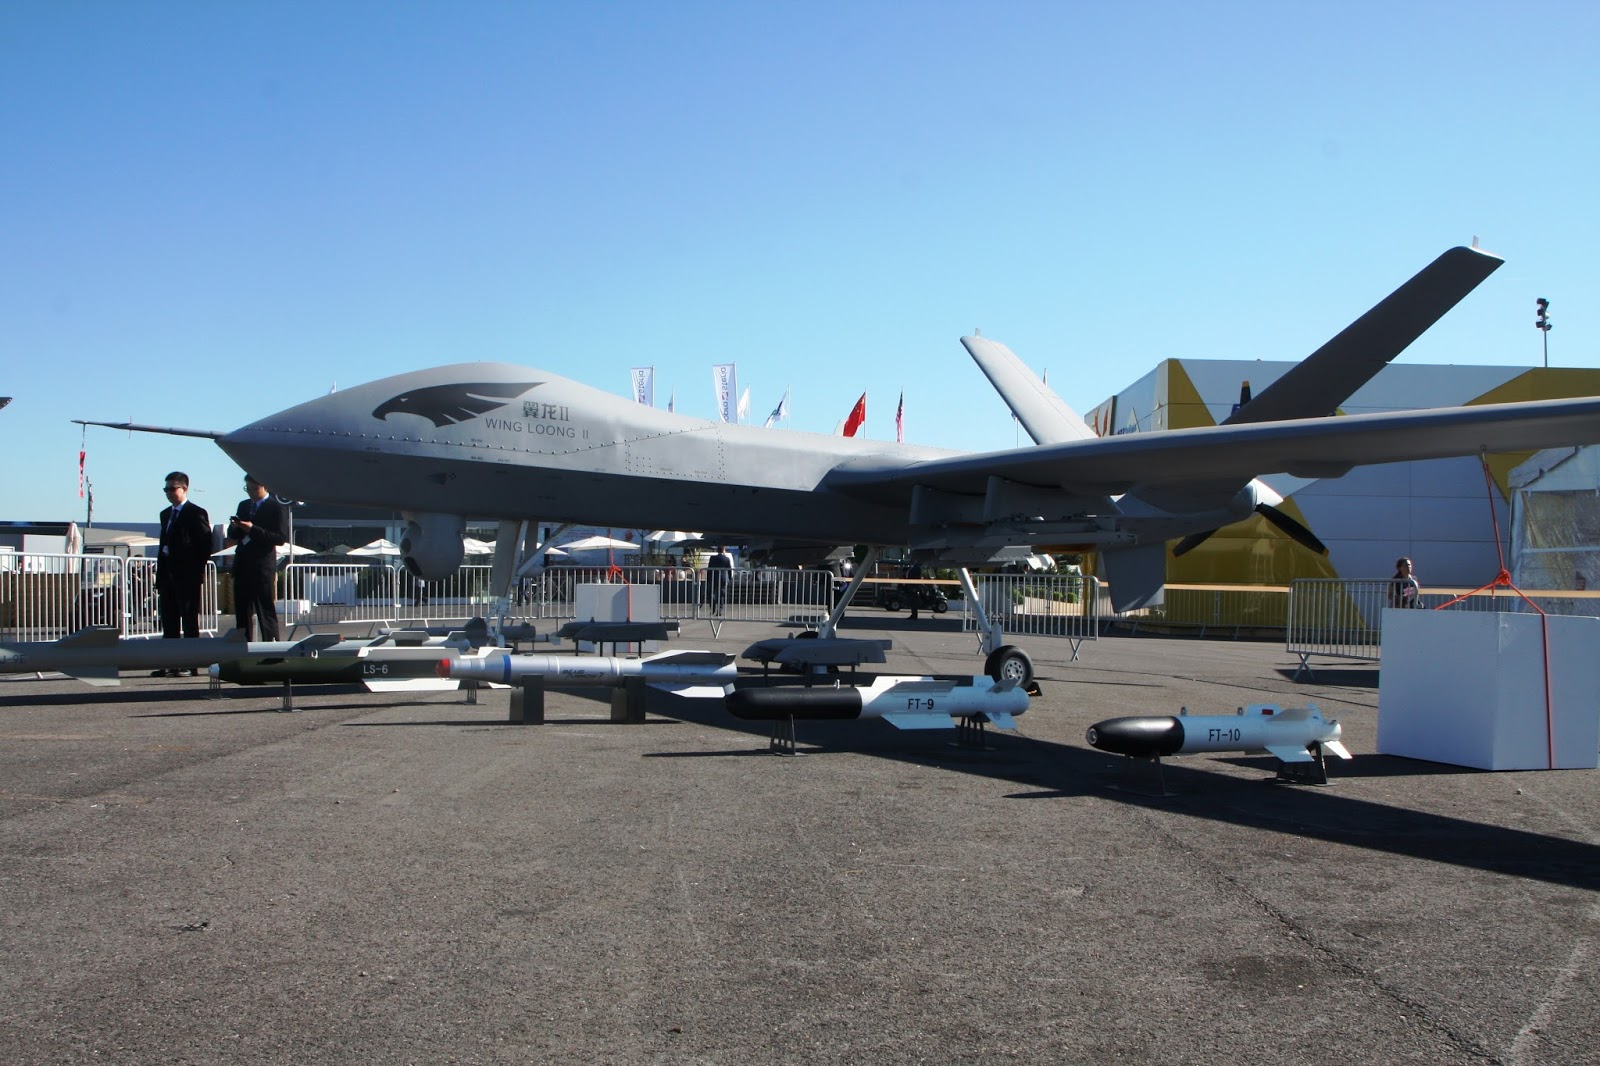 Chinese Wing Loong II Medium Altitude Long Endurance MALE Unmanned Combat Air Vehicle UCAV At Paris Show 2017 19 To 25 June Le Bourget